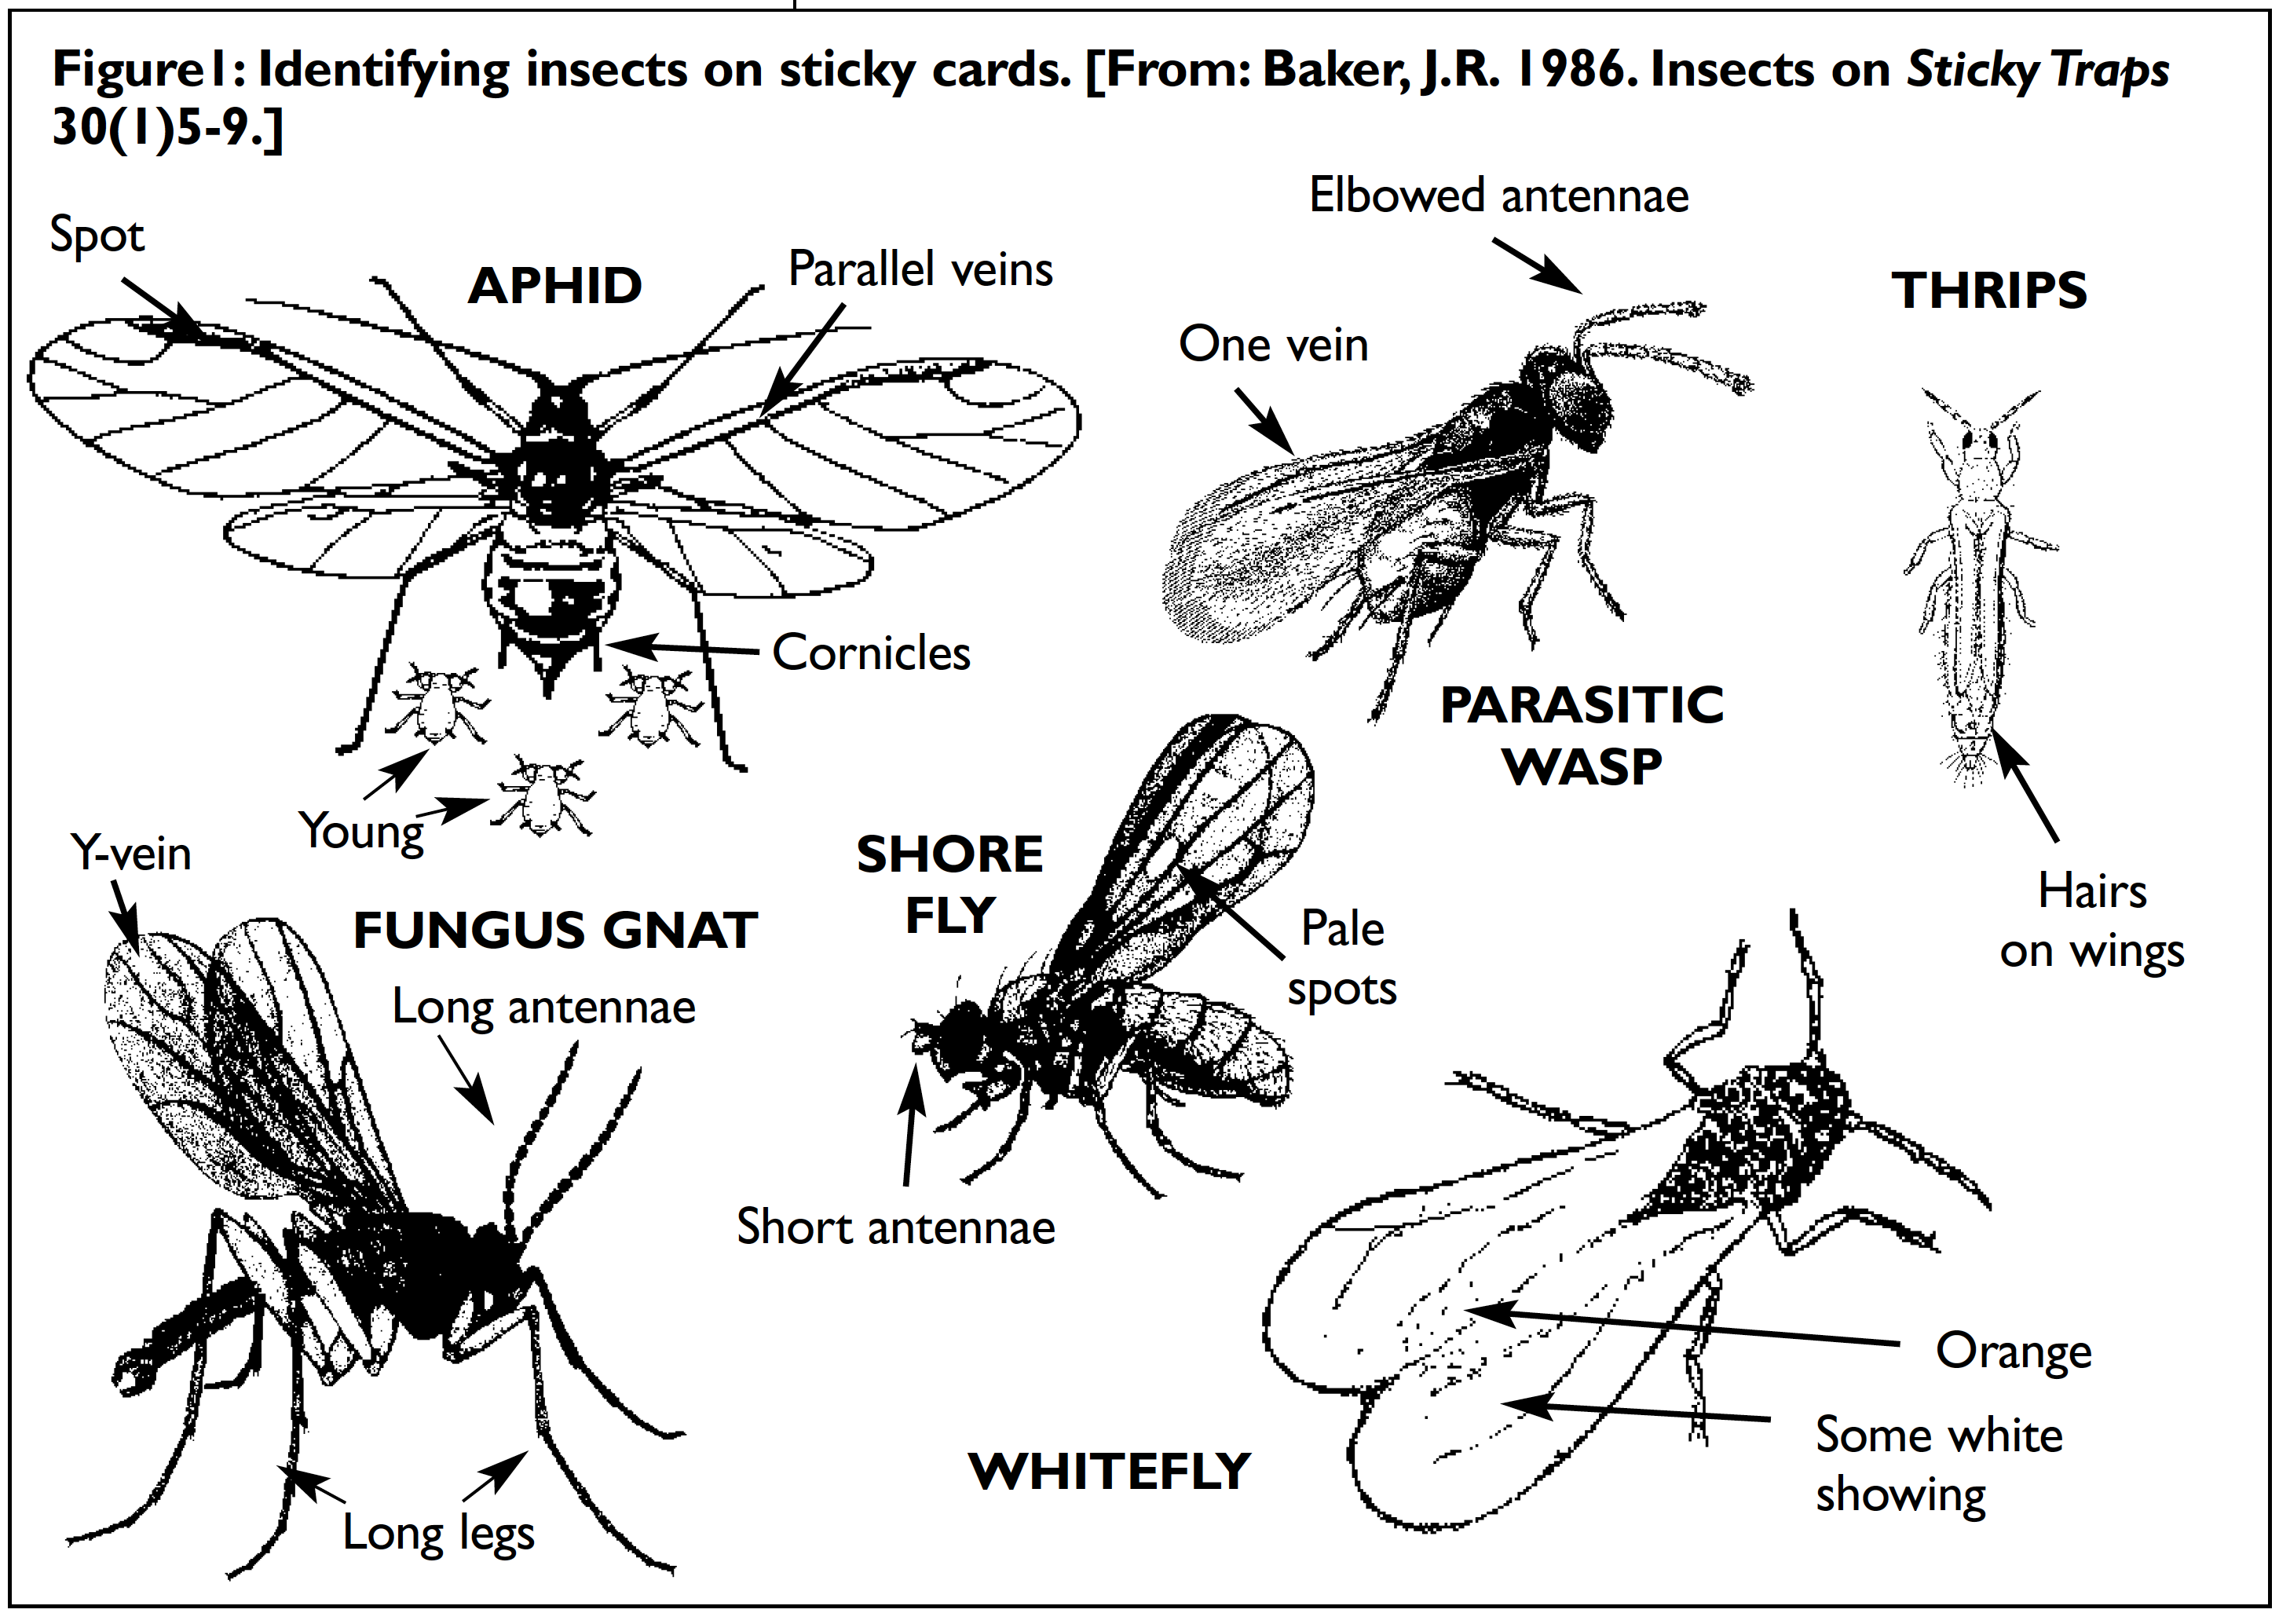 Figure 1: Identifying Insects on Sticky Cards